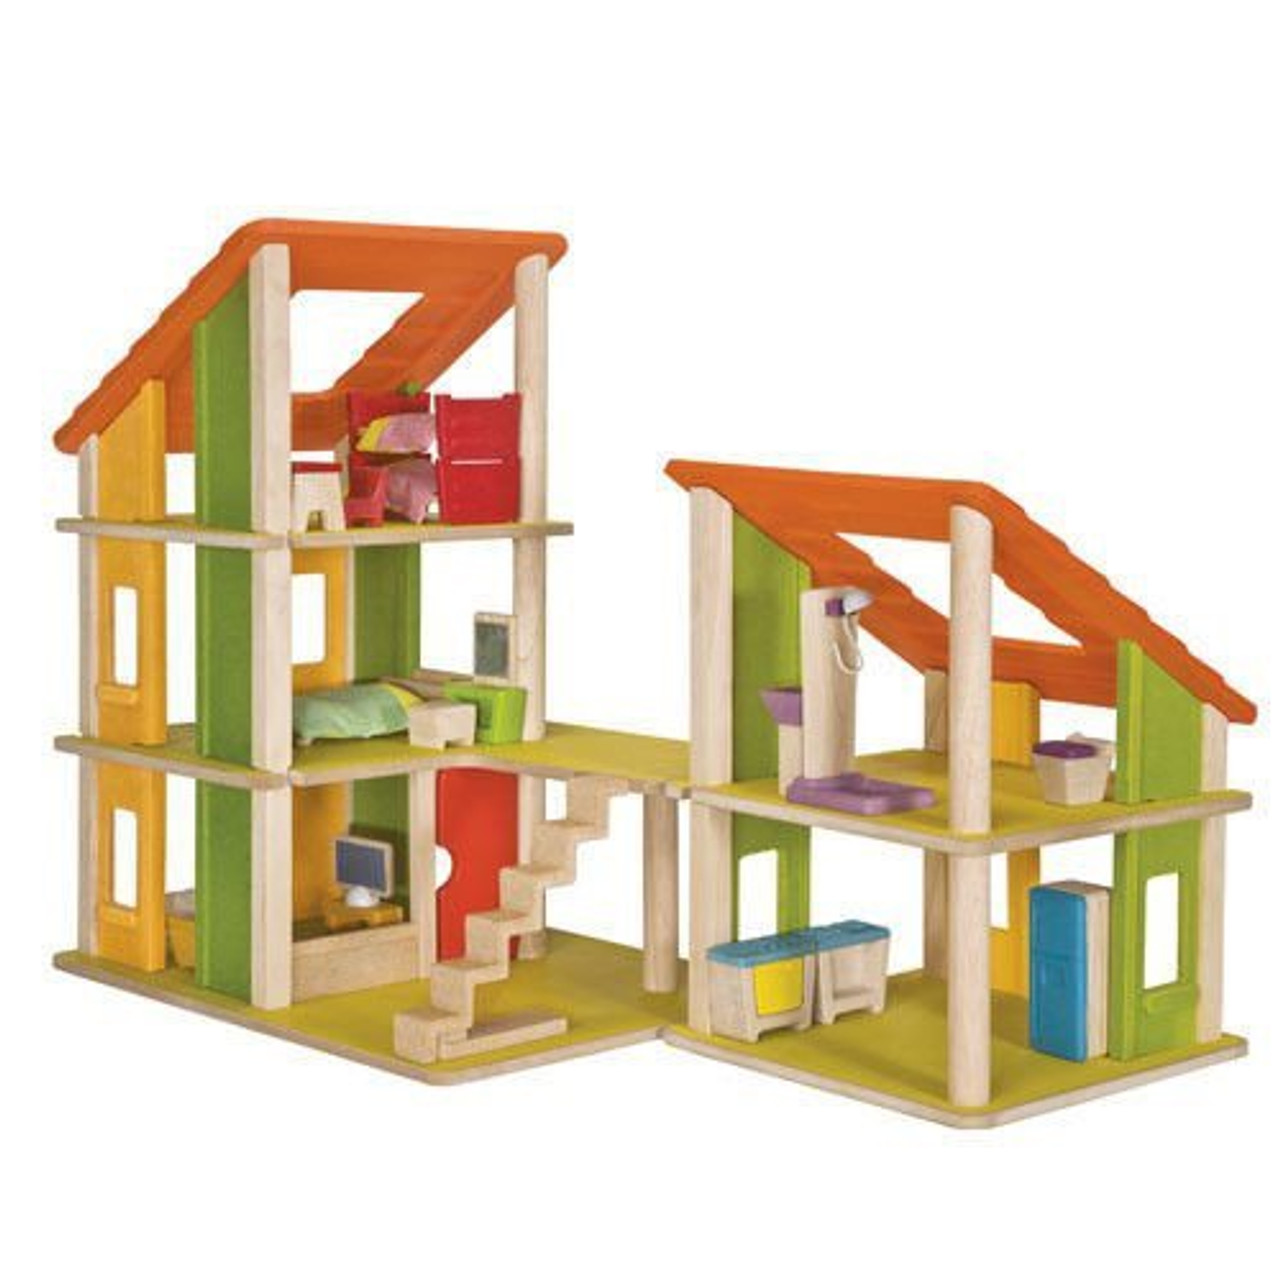 CHALET DOLLHOUSE WITH FURNITUR